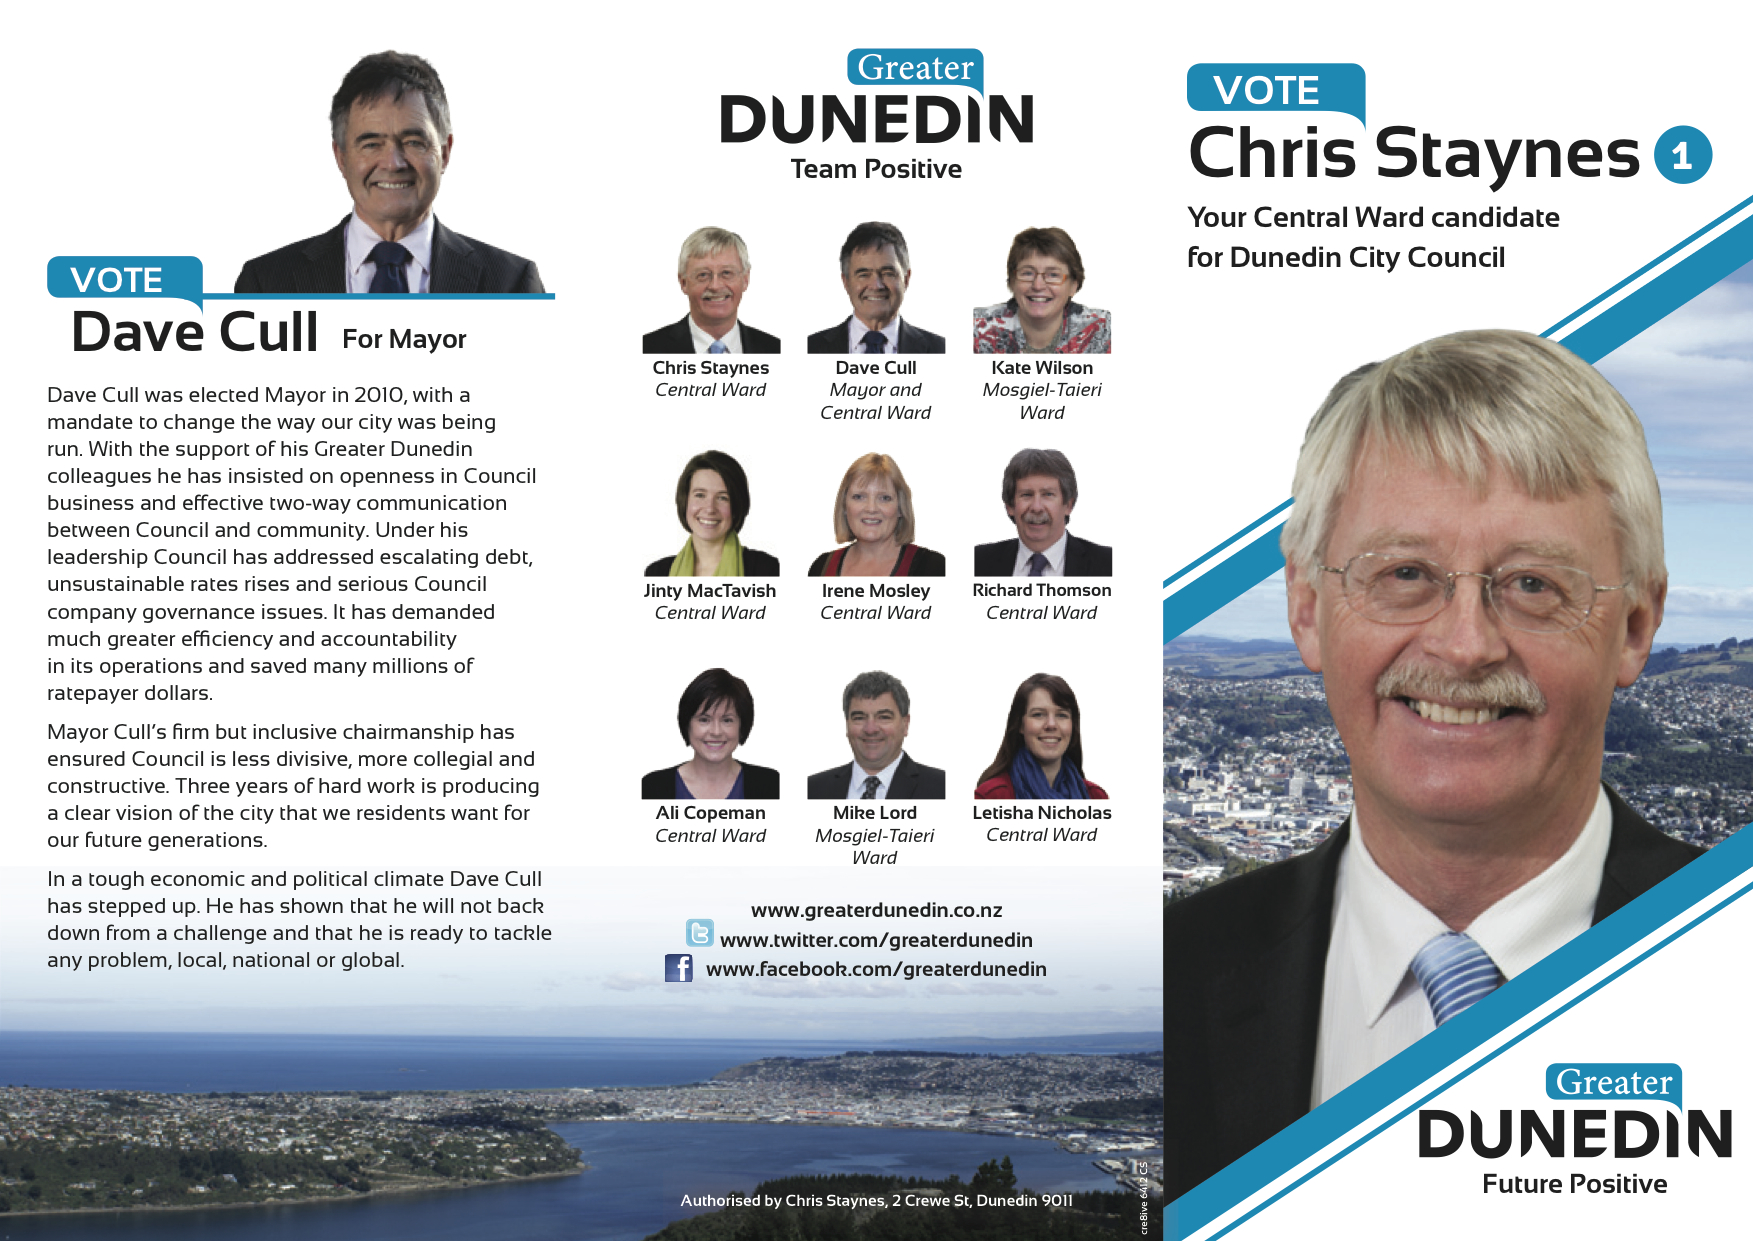 Chris Staynes - Greater Dunedin - 2013 Local Election